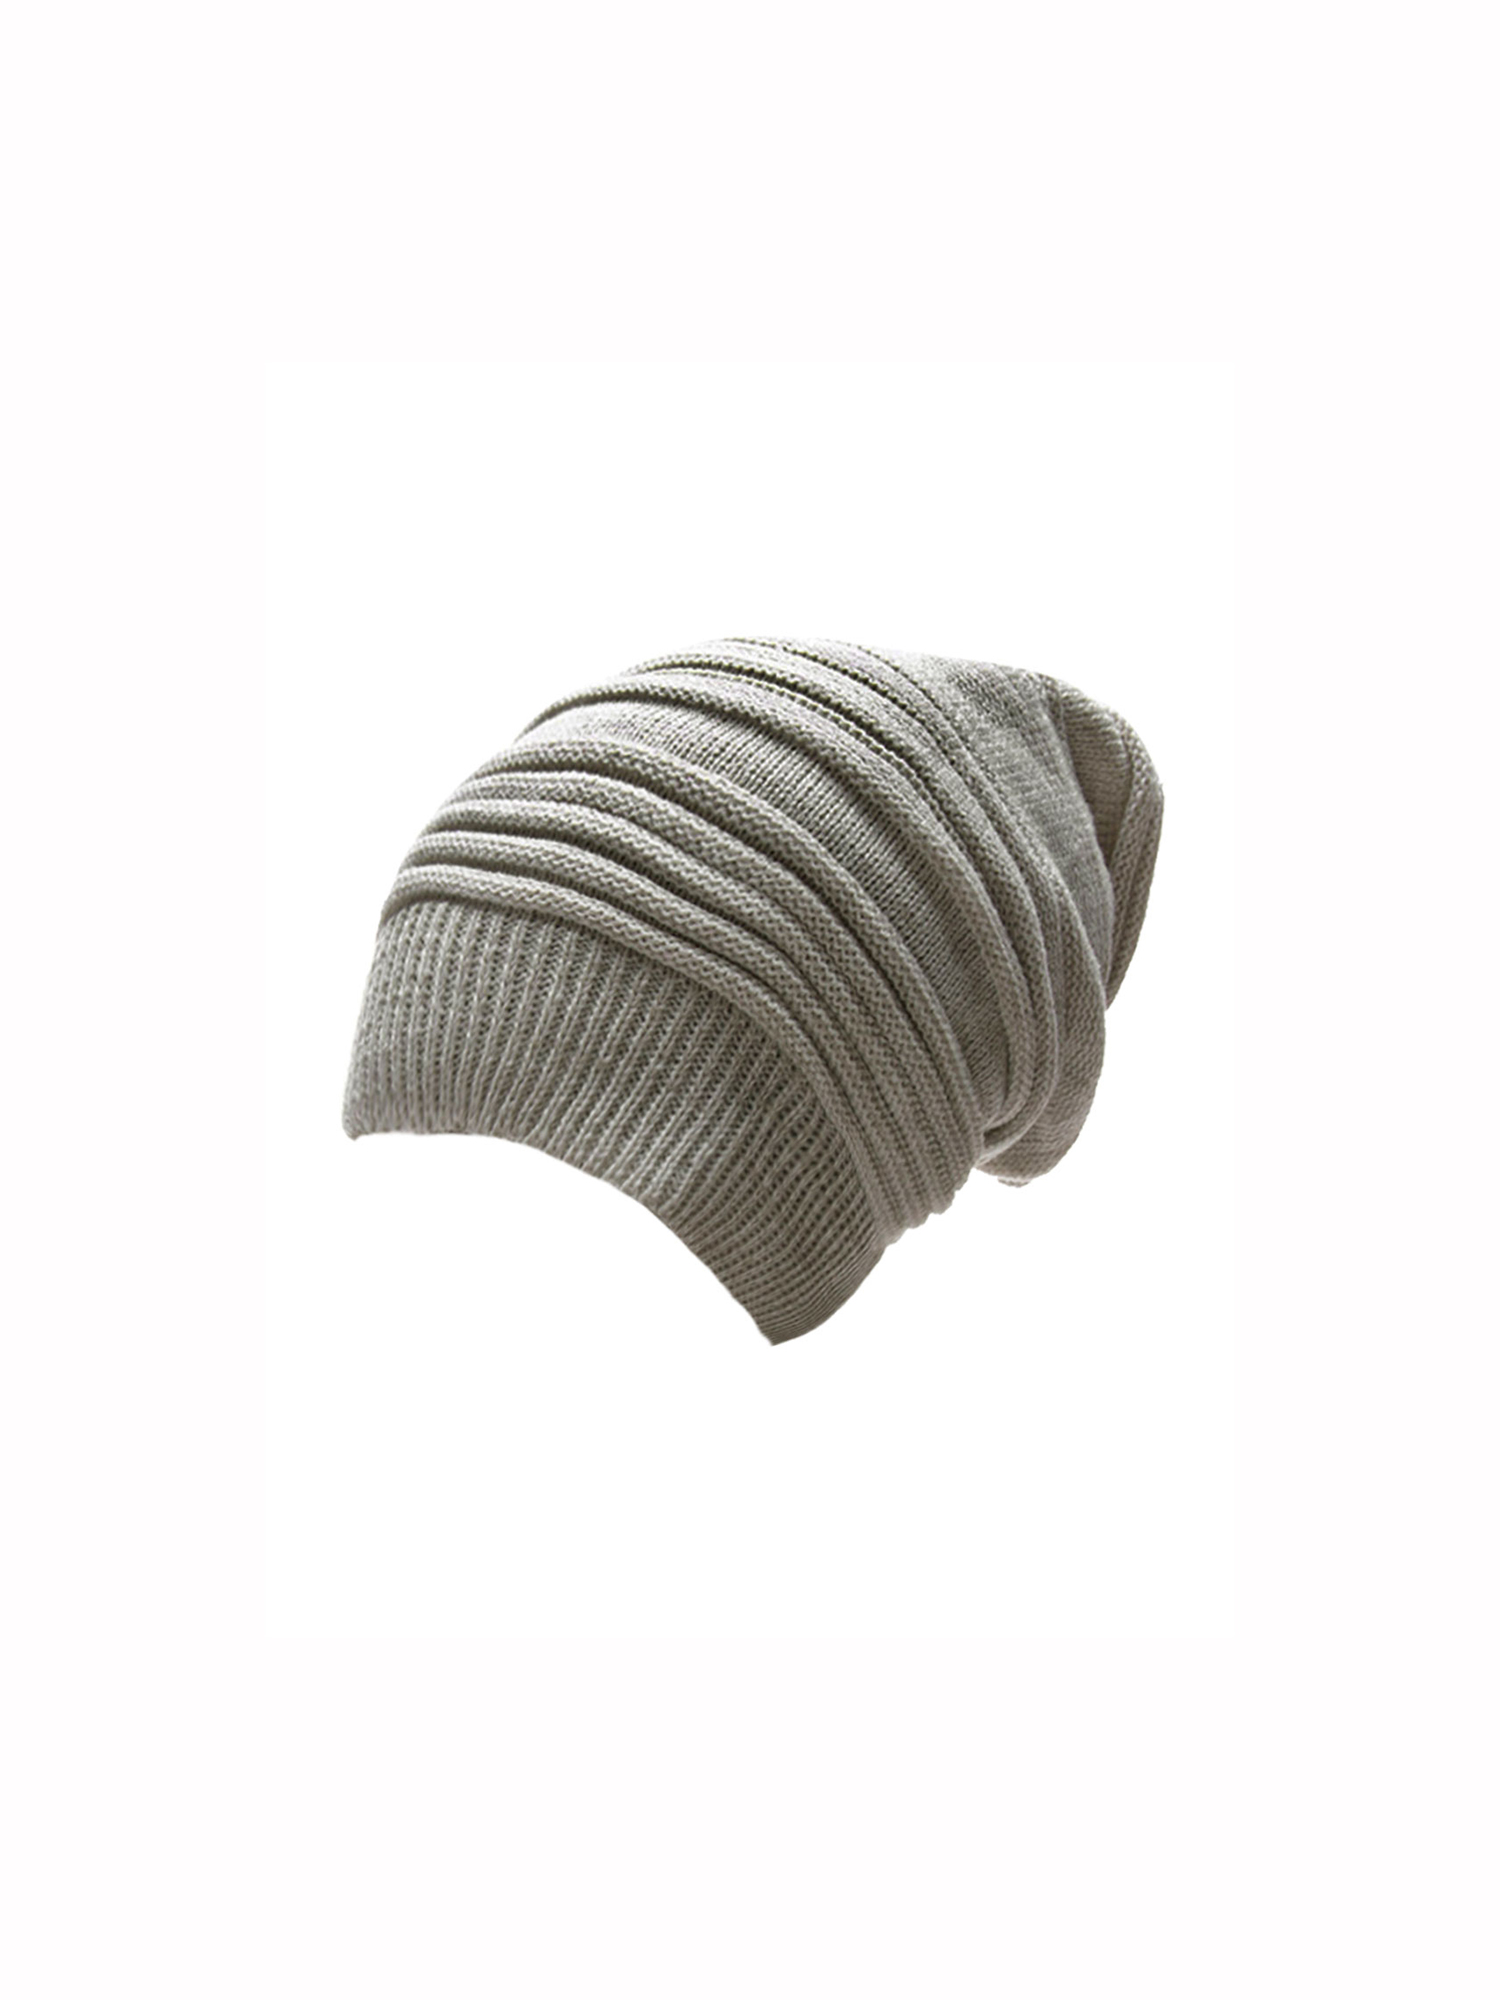 Men's Casual Style Hand Knitting Ribbed Beanie Hat White Light Gray